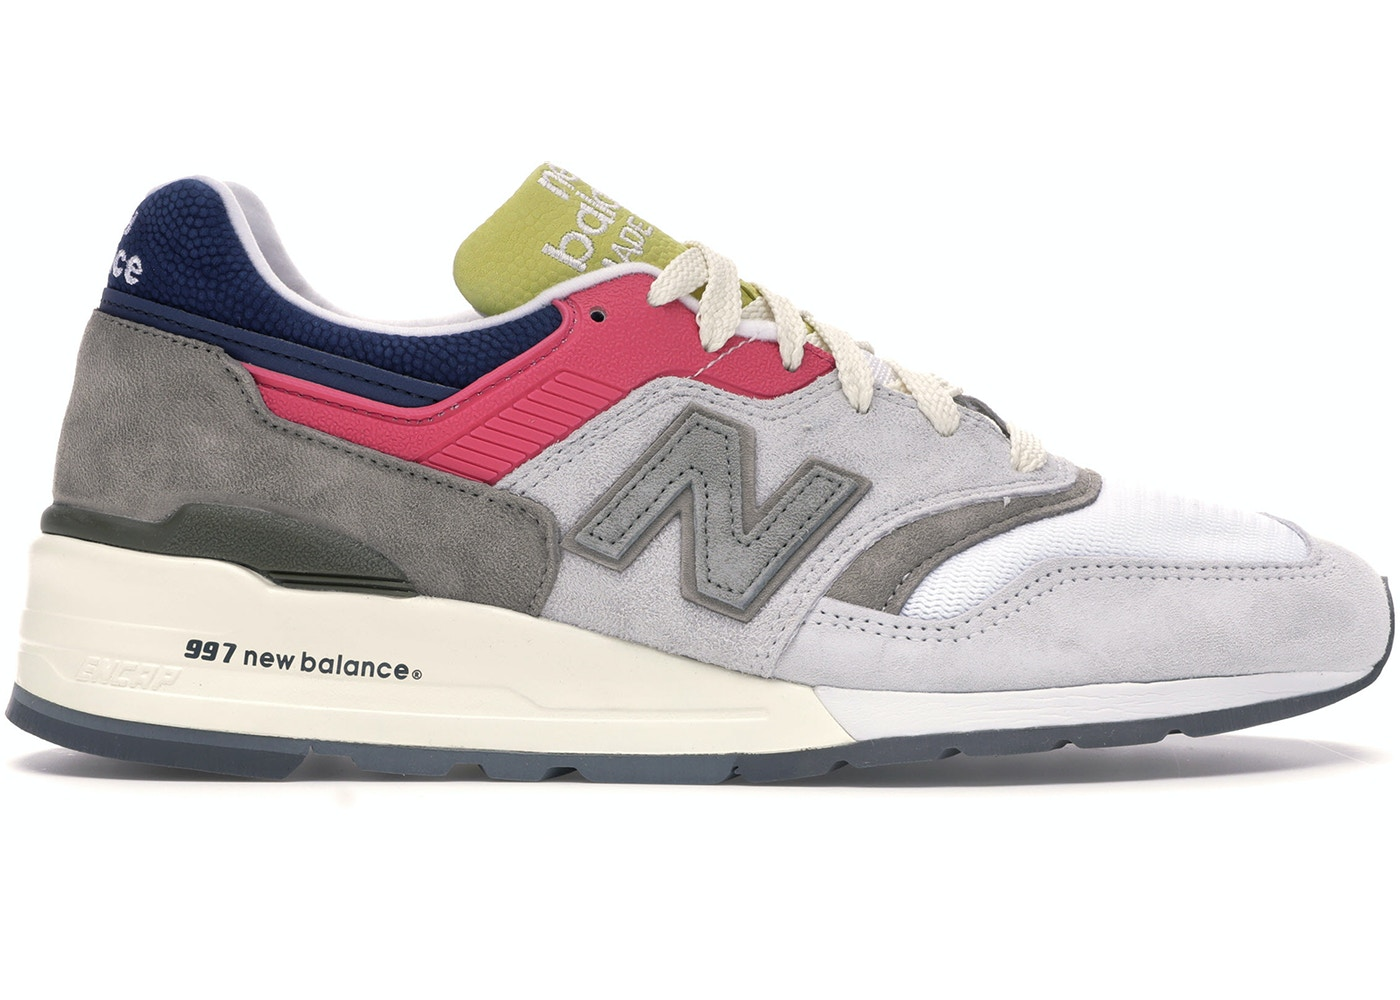 3a92acc539 Buy New Balance Shoes & Deadstock Sneakers